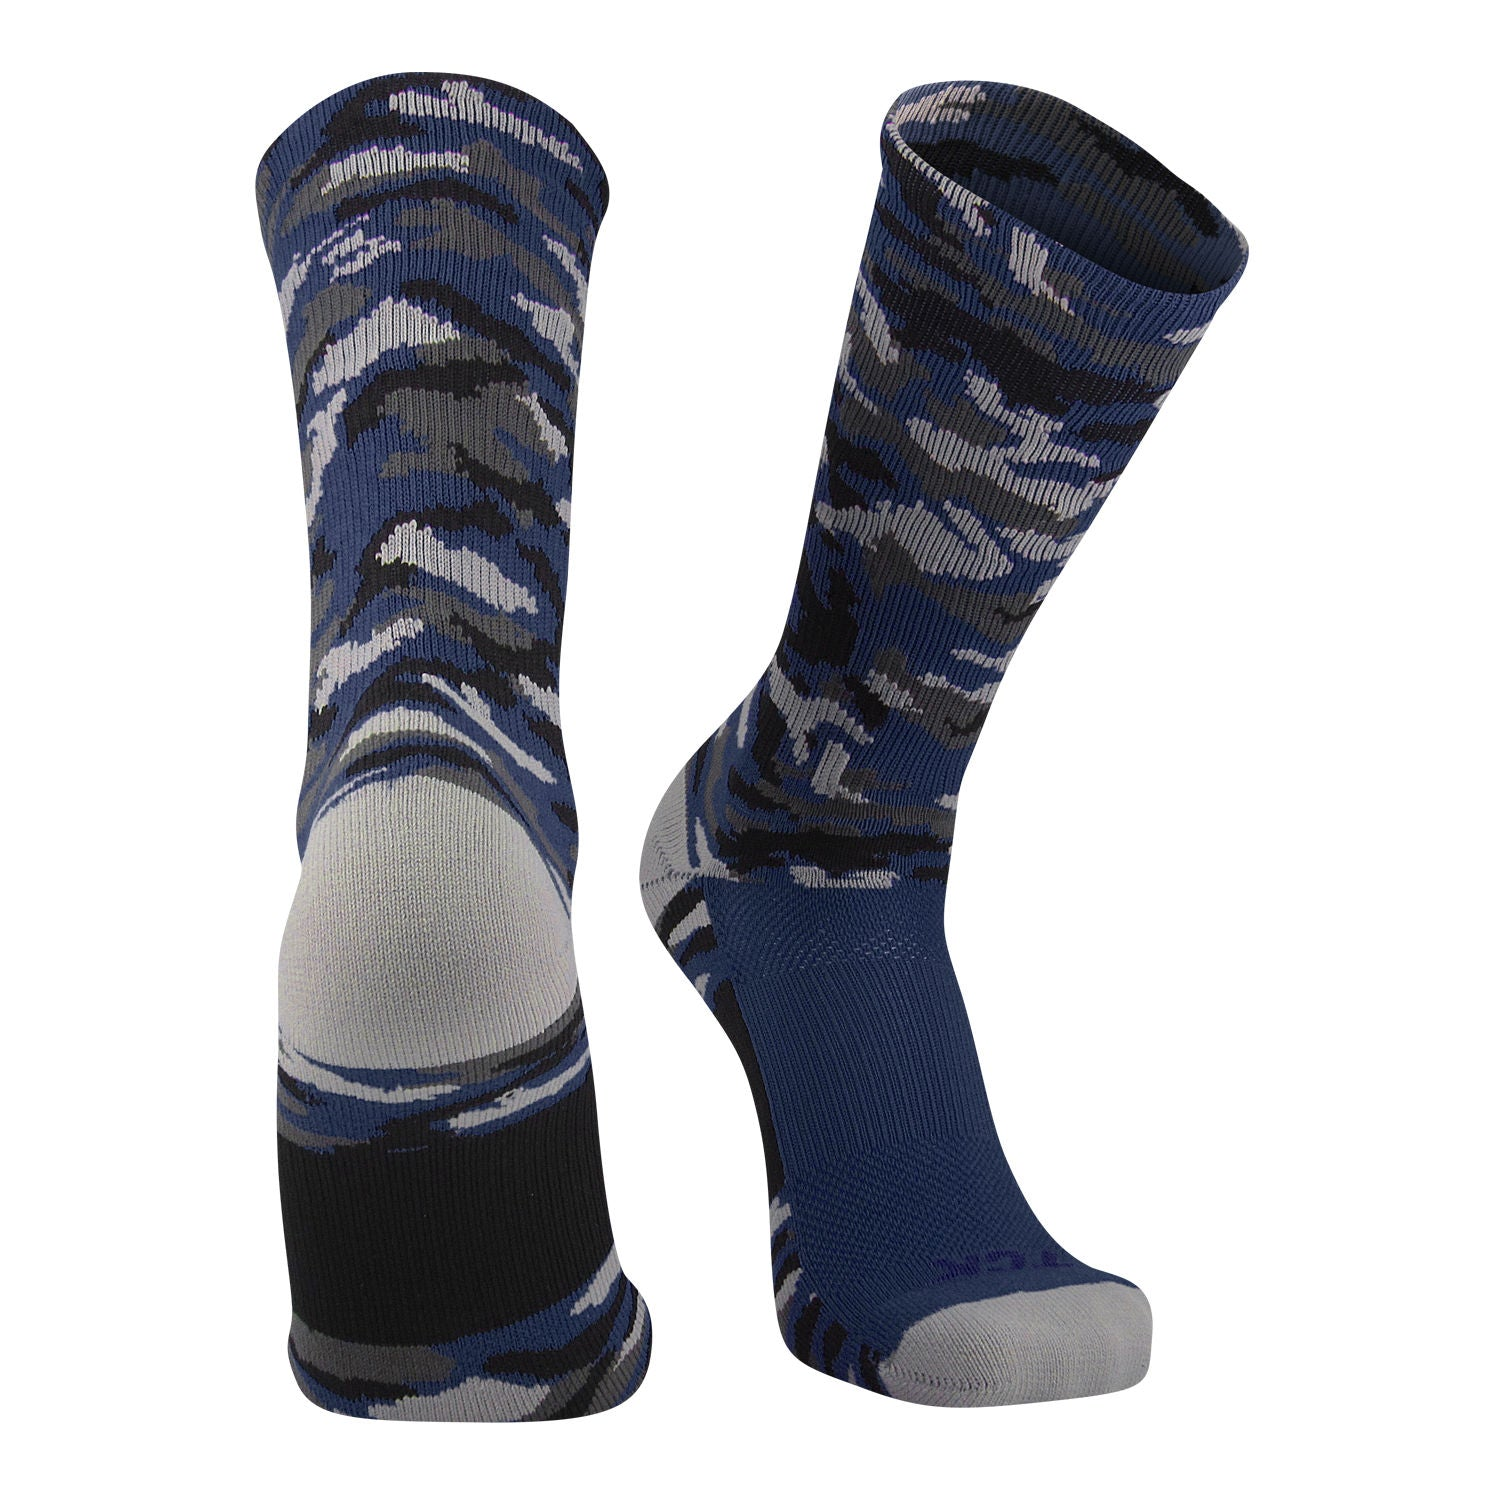 TCK Woodland Camo Elite Basketball Football Lacrosse proDRI Crew Socks